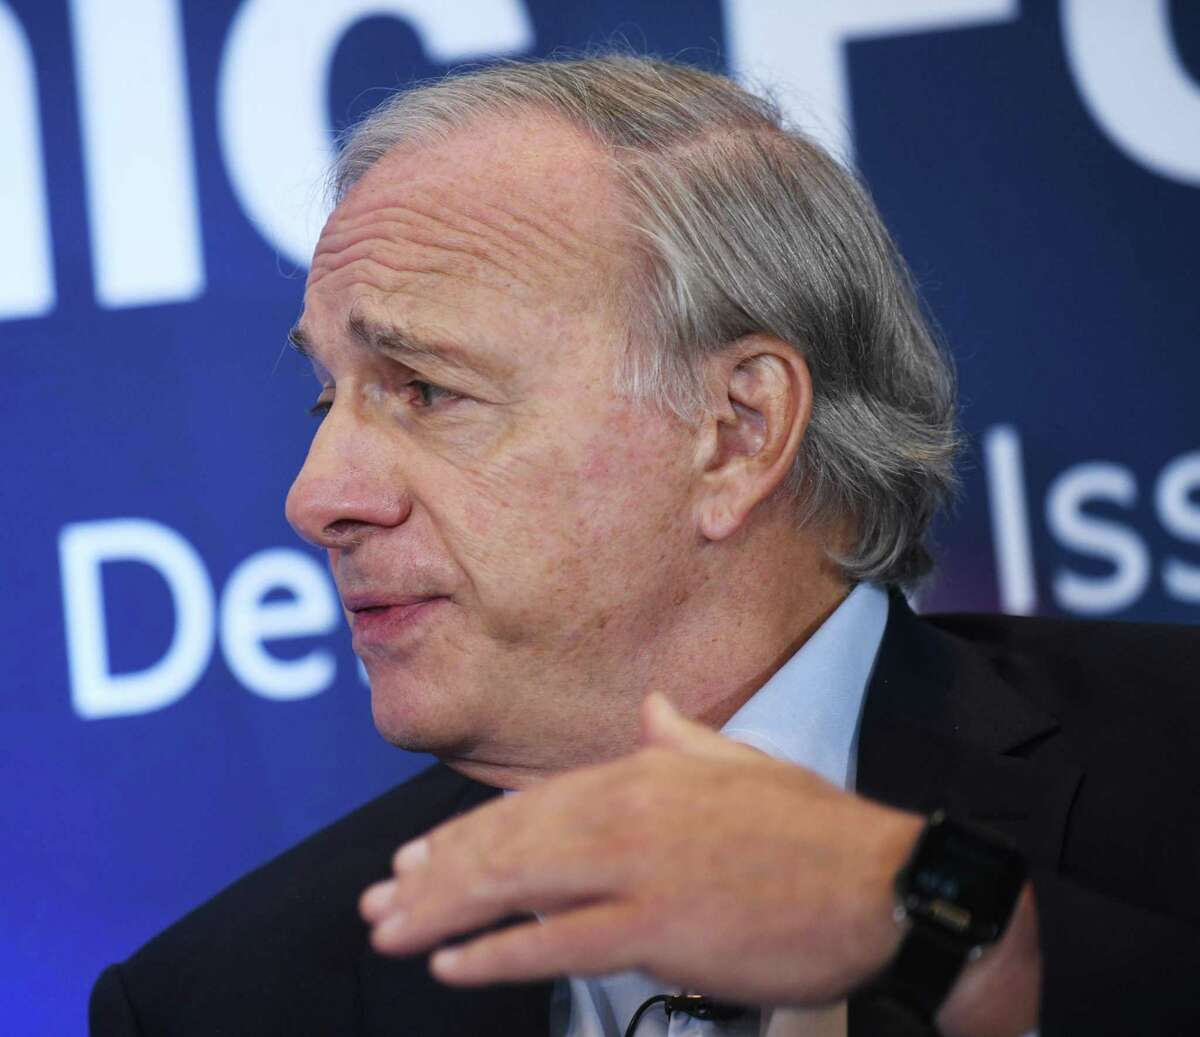 Ray Dalio, founder of Westport-based Bridgewater Associates, the world's largest hedge fund, speaks with Gillian Tett, Chairman of the Financial Times Board of Directors and US Editor-in-Chief on Day One of the Greenwich Economic Forum 2021 on Tuesday, September 21, 2021 at the Delamar Hotel at 500 Steamboat Road in Greenwich, Connecticut.